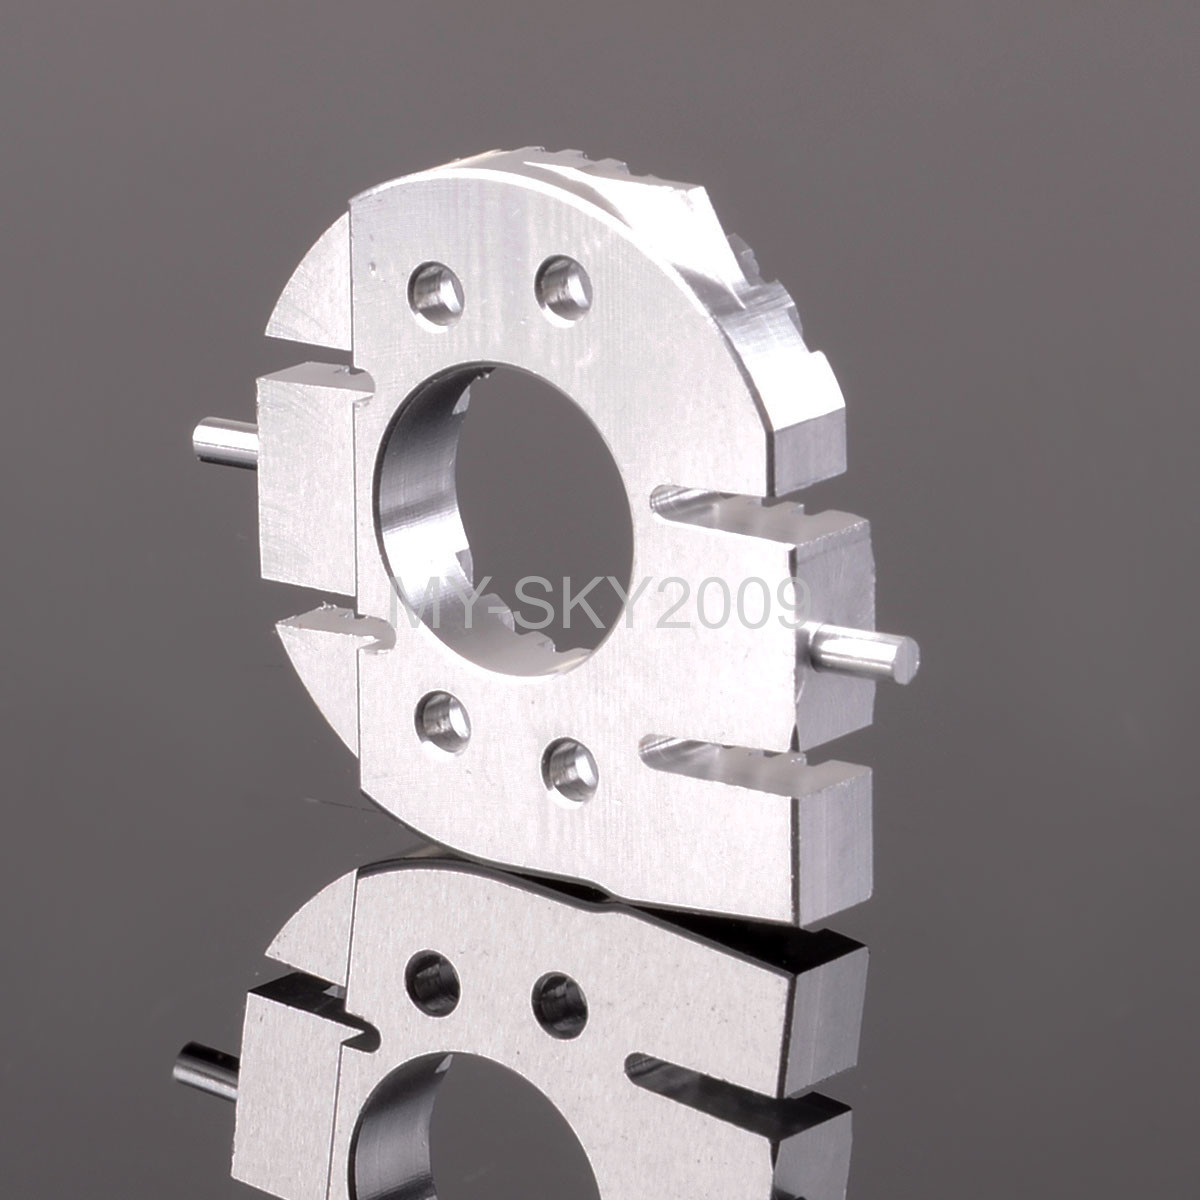 Alloy Motor Heat Sink Plate 1pc For Tamiya CC01 Silver